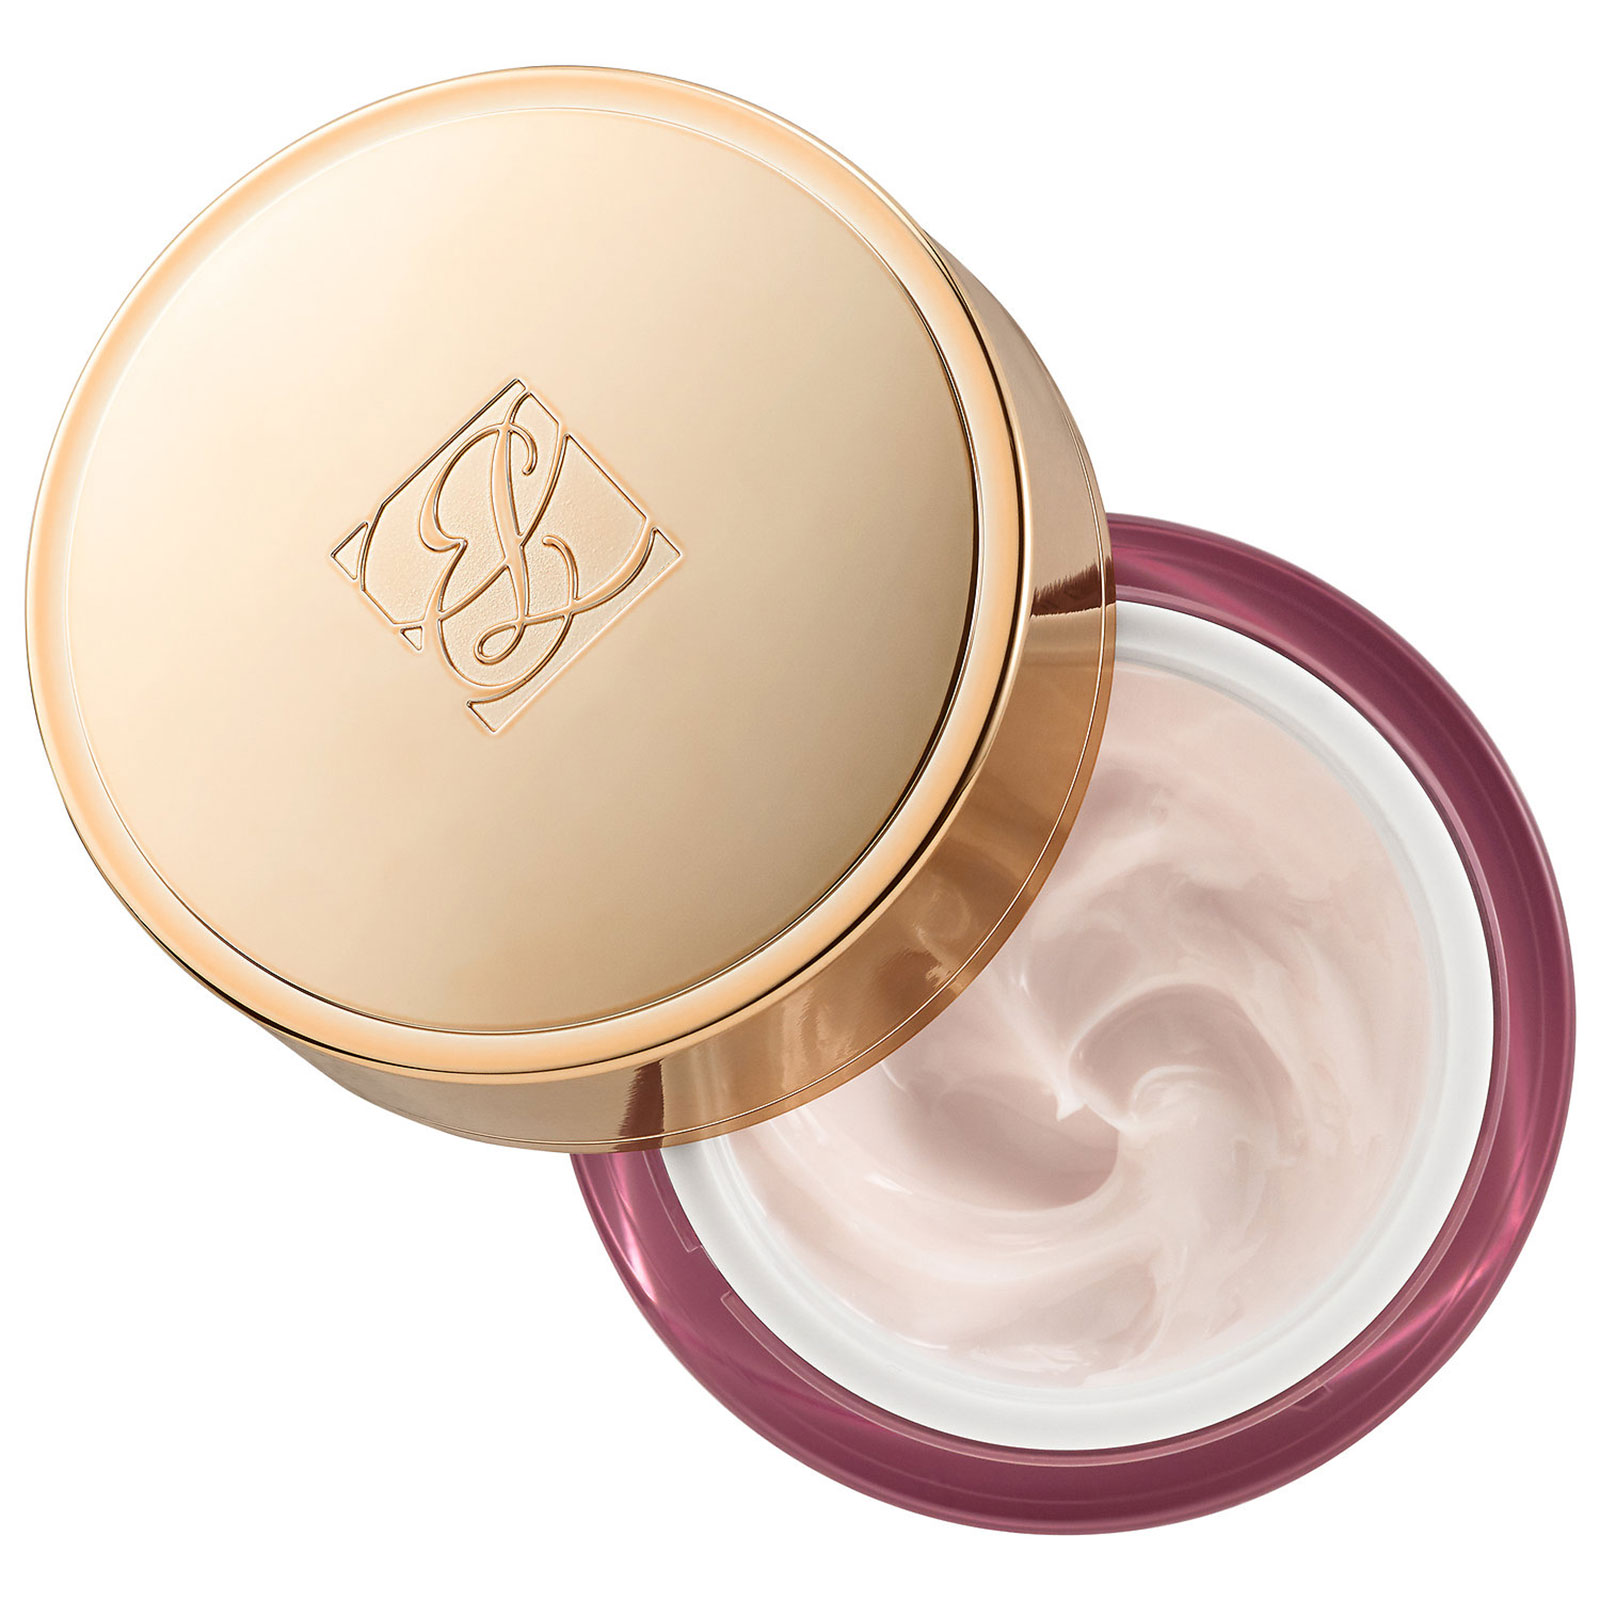 Estee-Lauder-Resilience-Lift-Night-Lifting-Firming-Face-and-Neck-Creme-OPEN